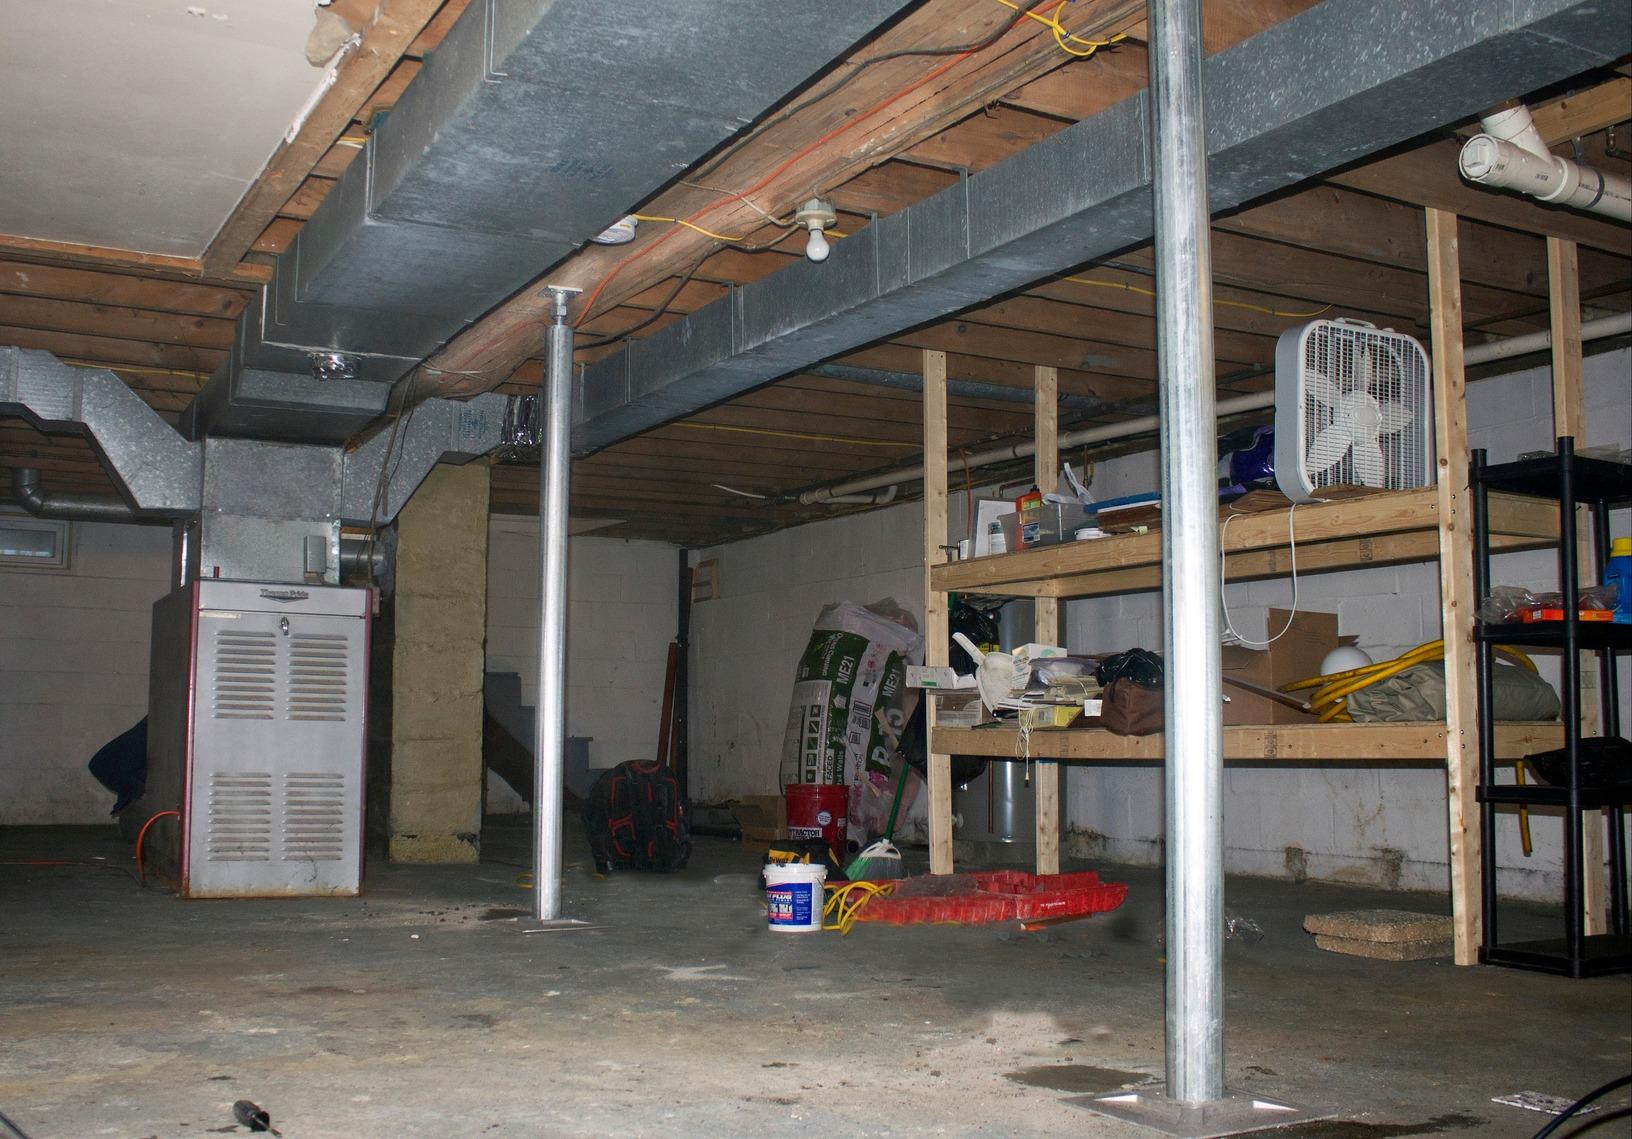 Replacing old I-Beam supports with Galvanized Steel SmartJacks in Claremont, New Hampshire - After Photo